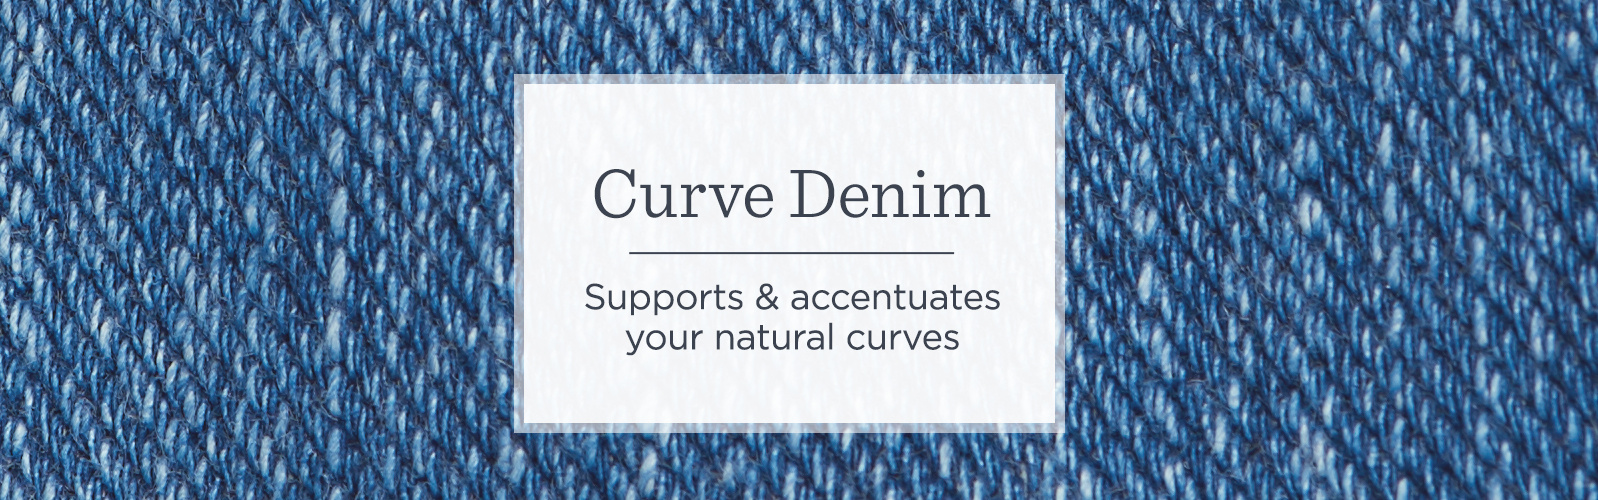 Curve Denim — Supports & accentuates your natural curves